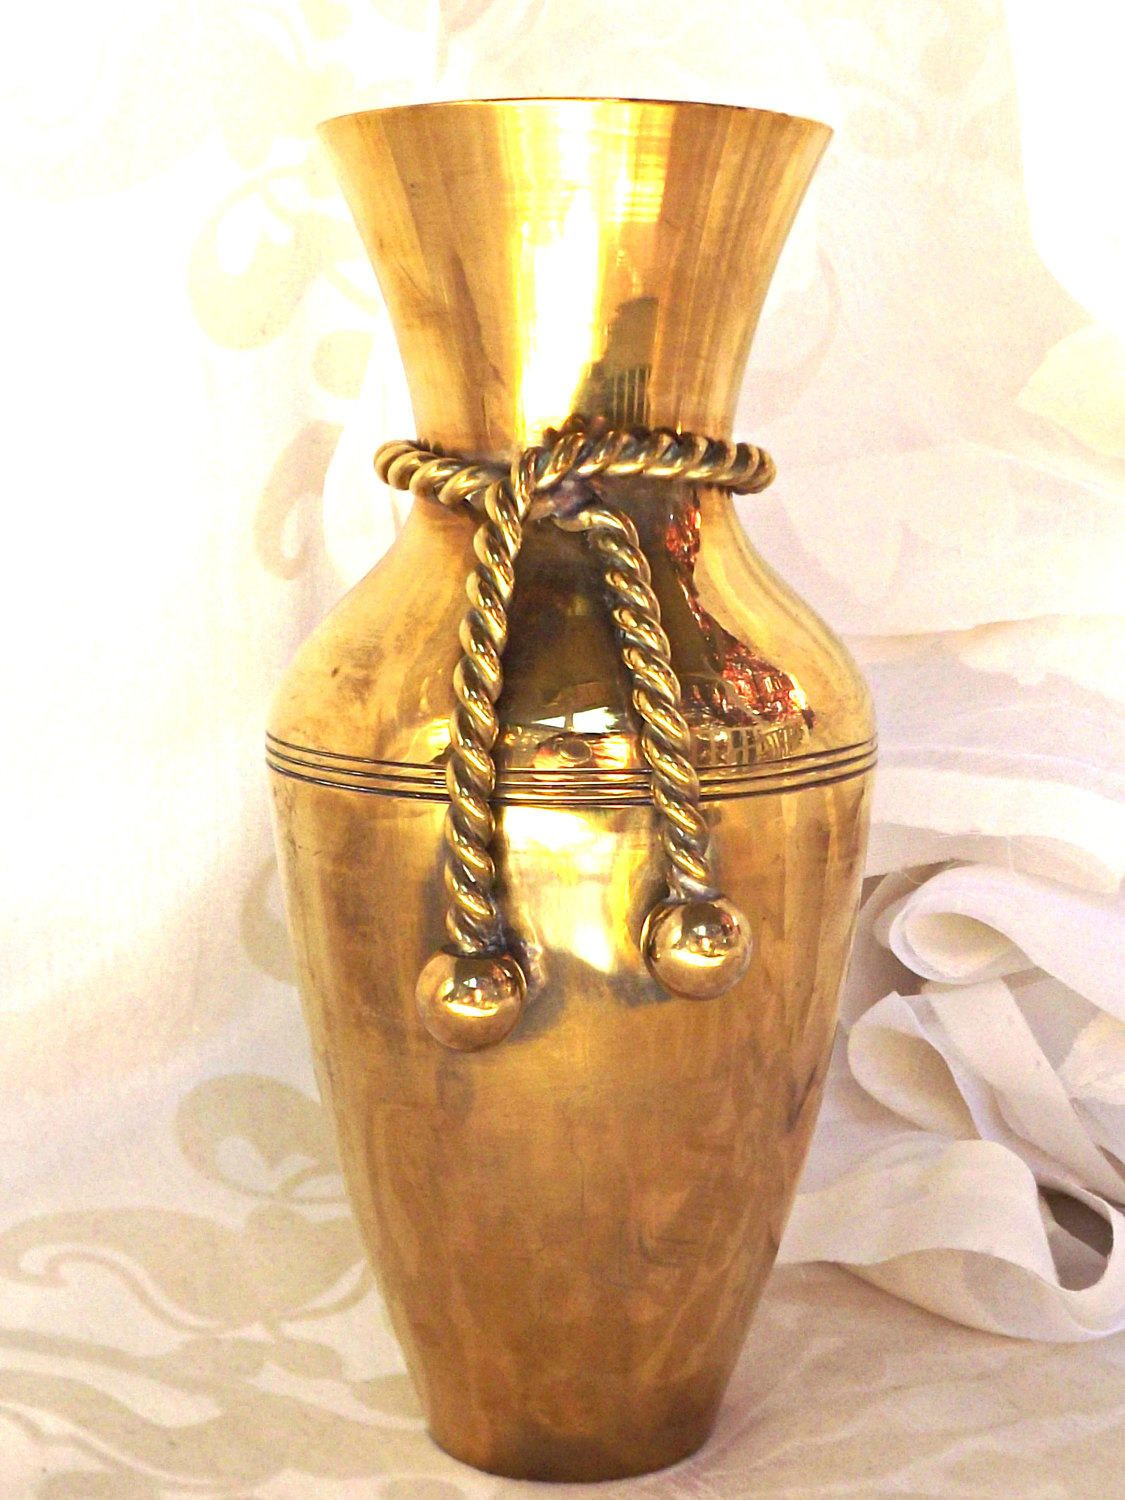 Brass vase home decor solid brass vase retro decor brass decor brass vase home decor solid brass vase retro decor brass decor reviewsmspy